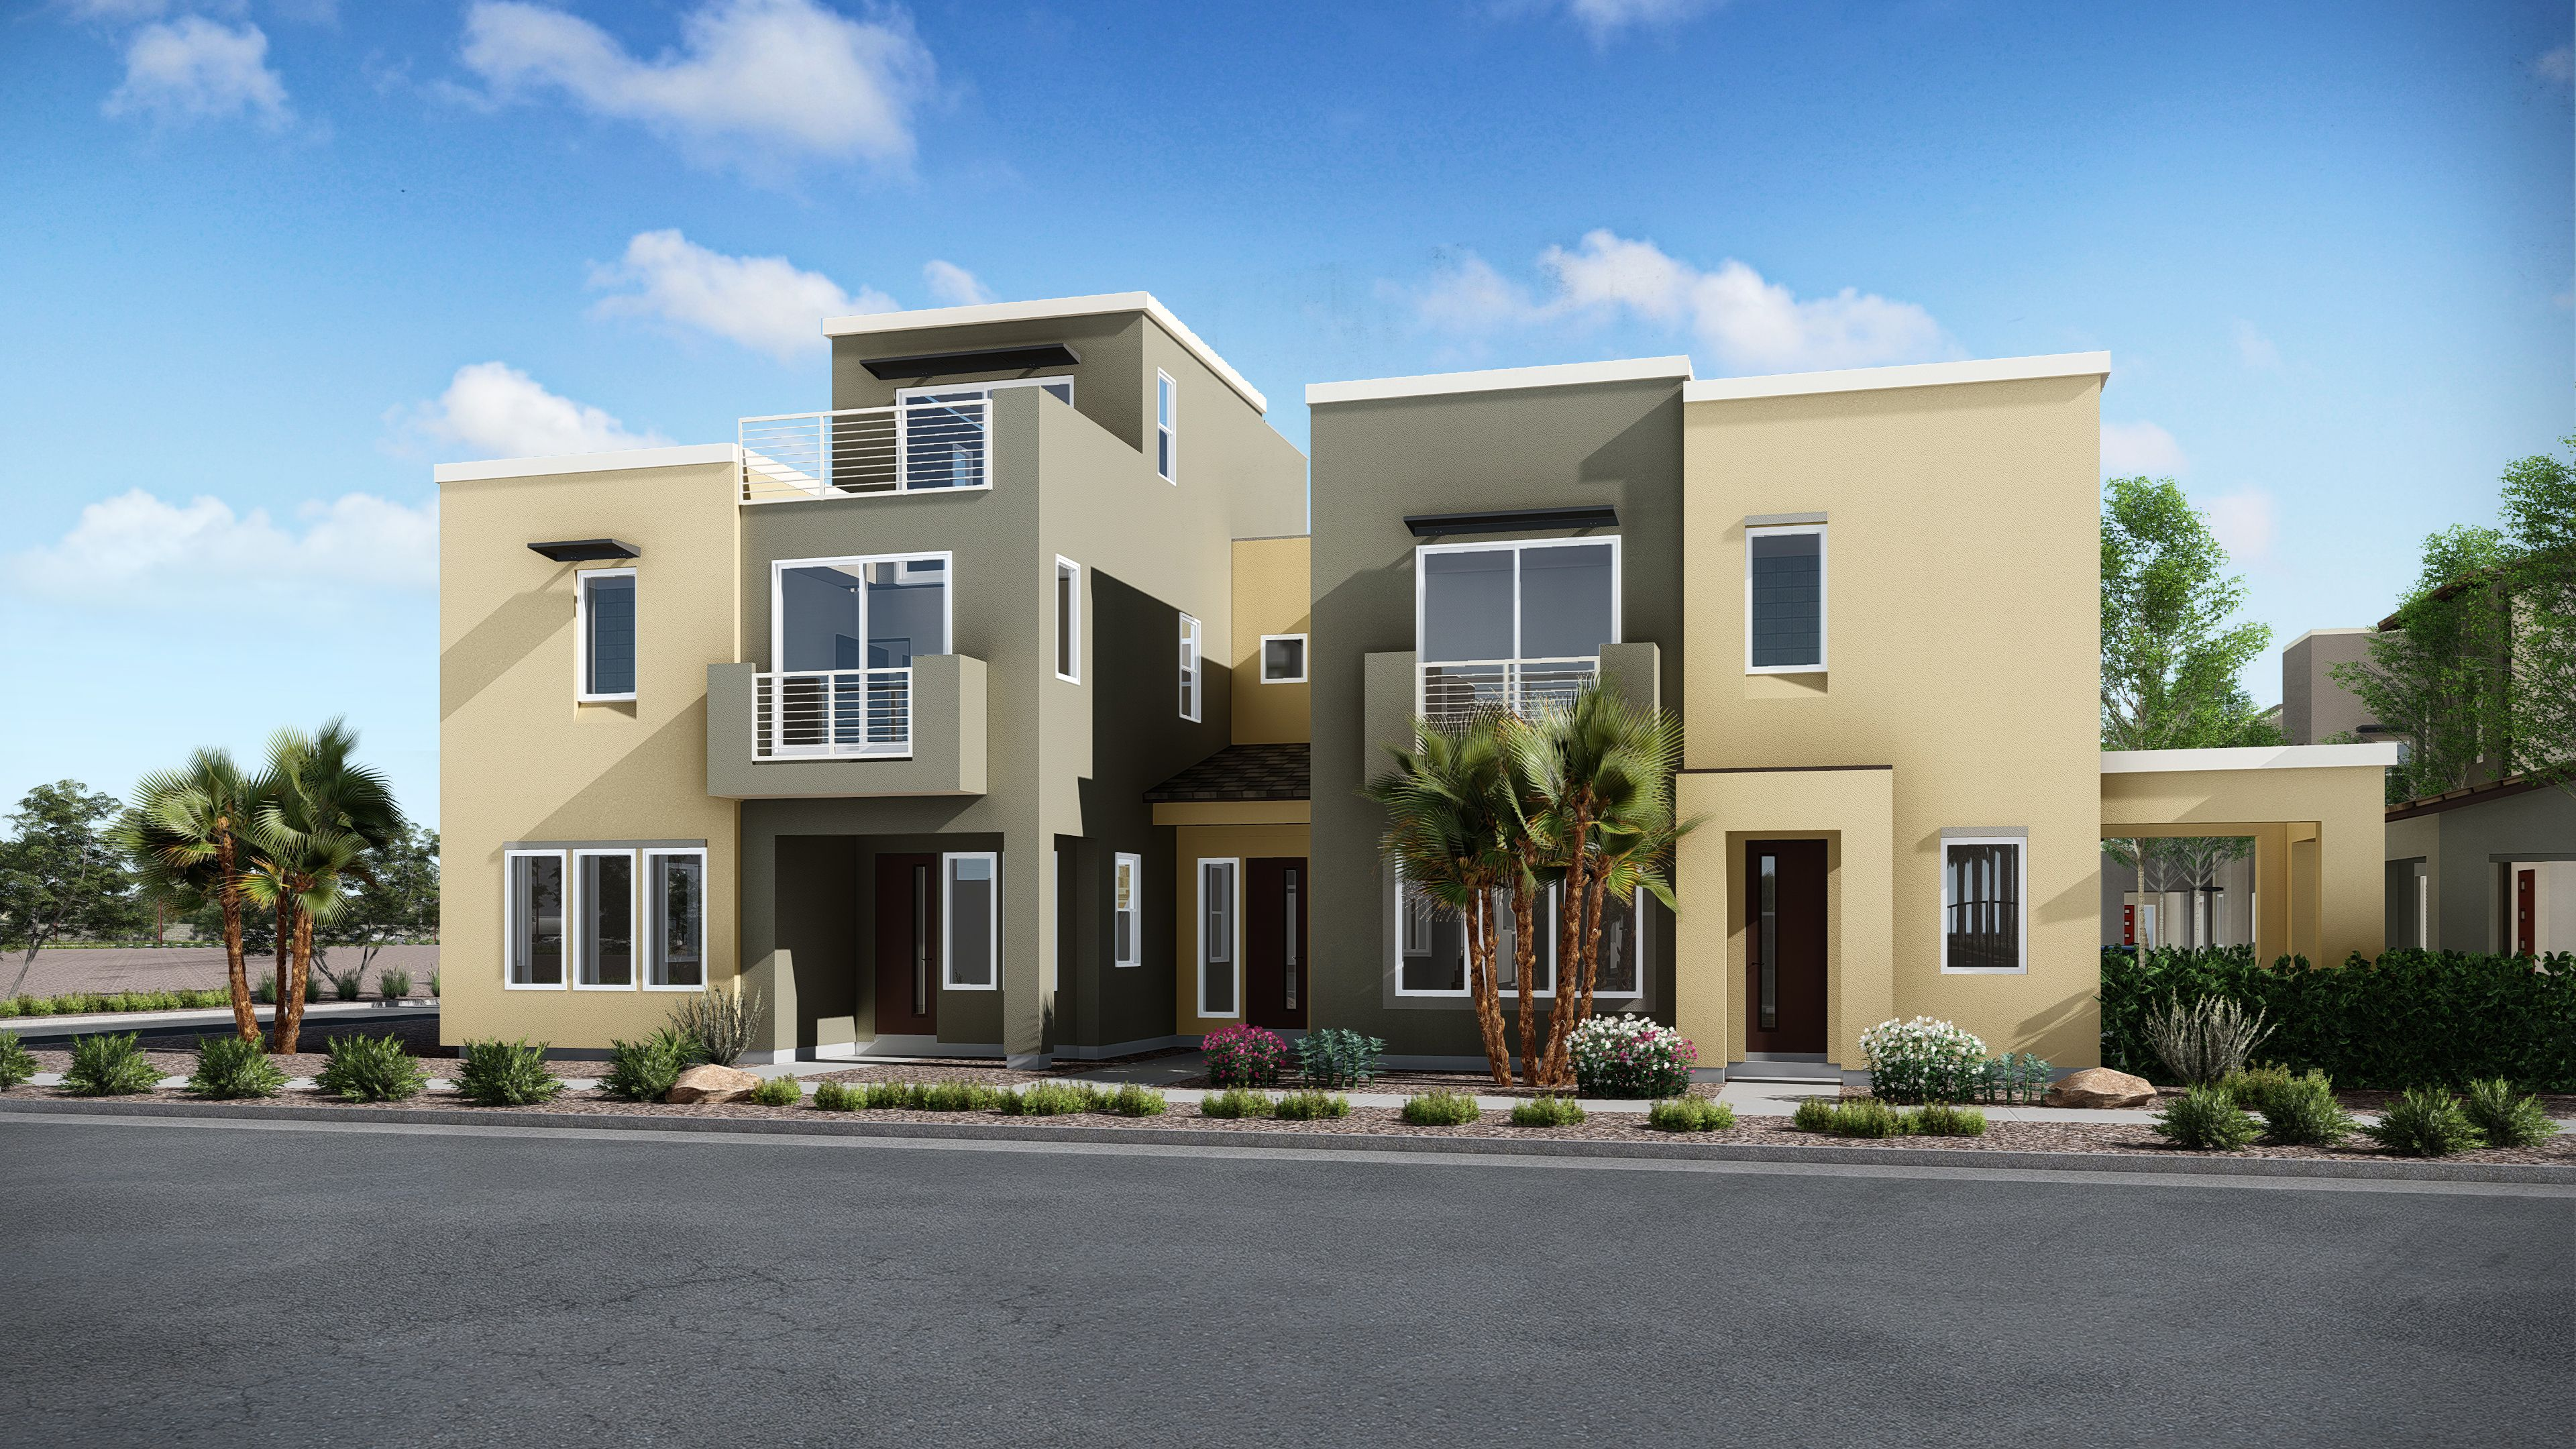 William Lyon Homes Developments in Las Vegas